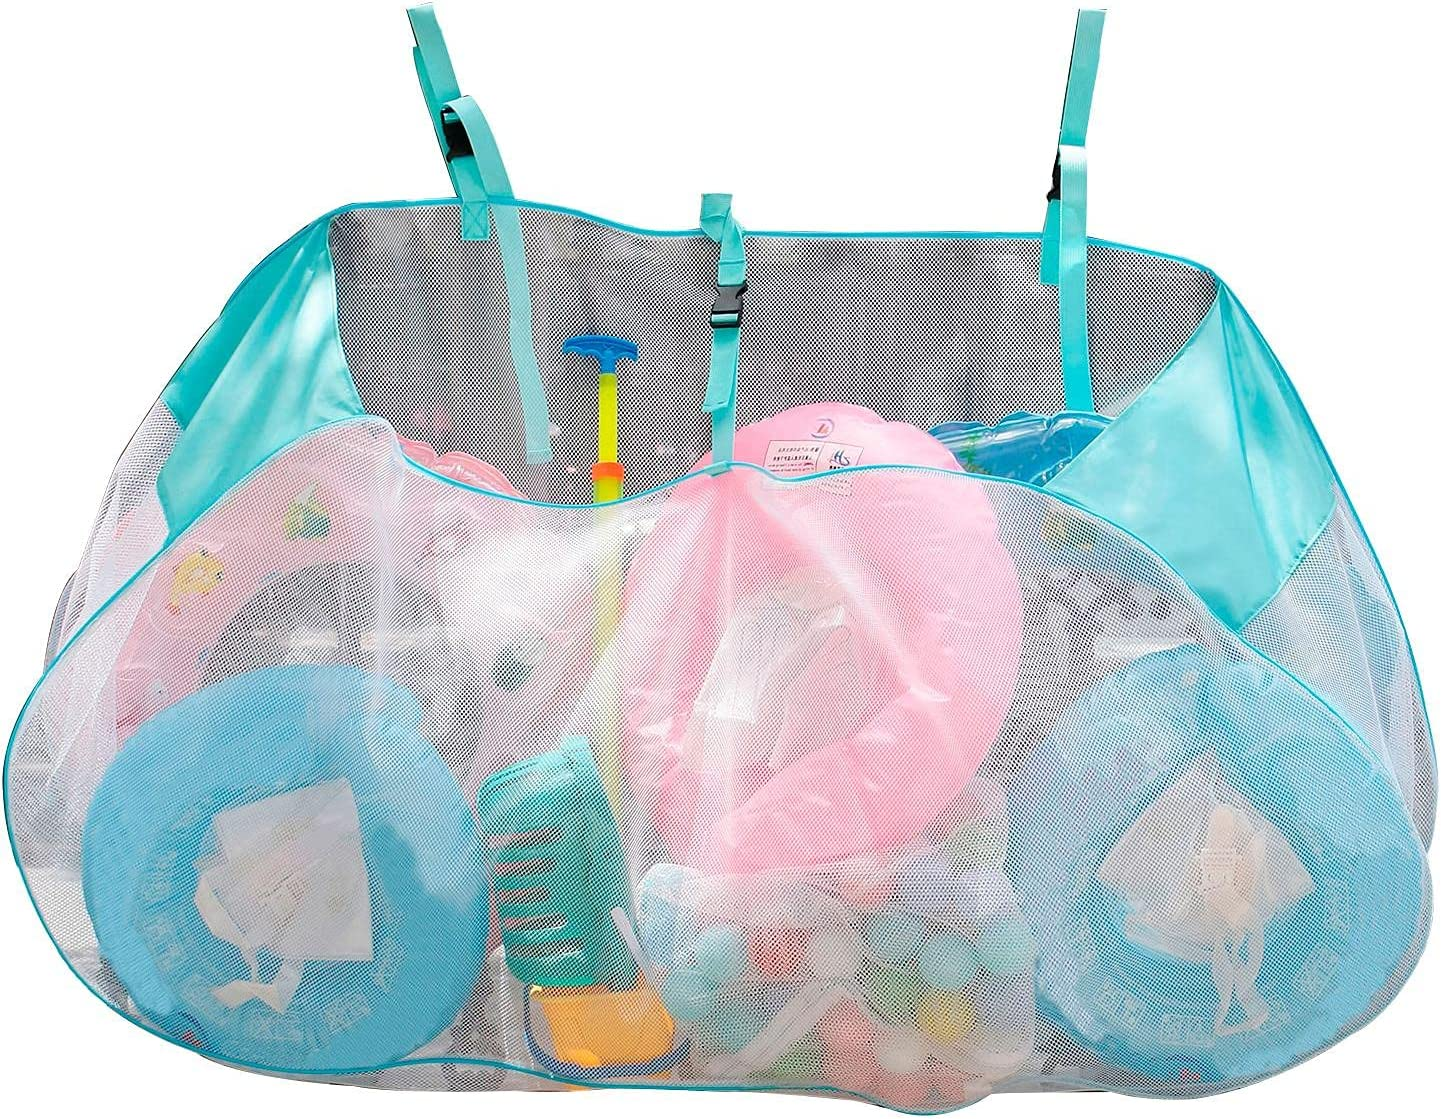 Swimming Pool Max 70% OFF Toy Storage Bag Clear Mesh Capacity Ranking TOP1 Tote Large